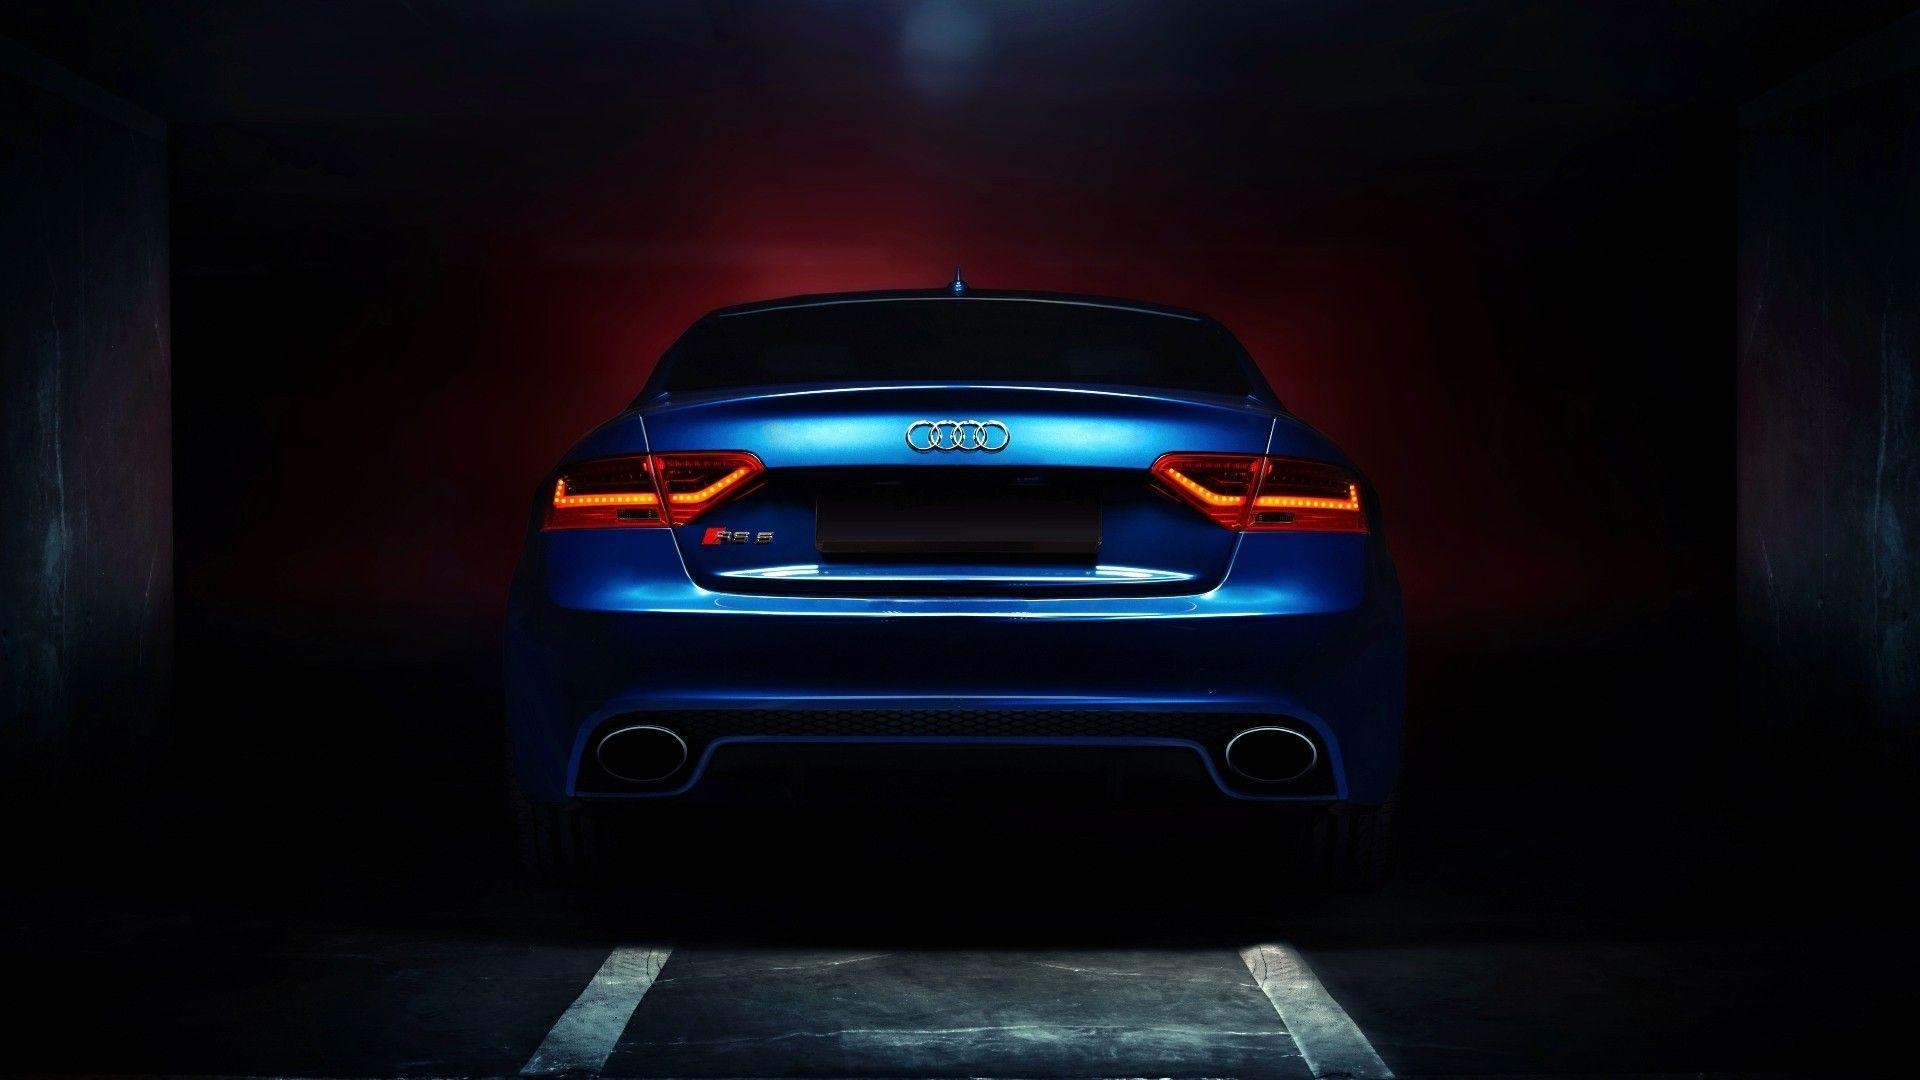 Audi RS5 Full HD Wallpapers and Backgrounds Image